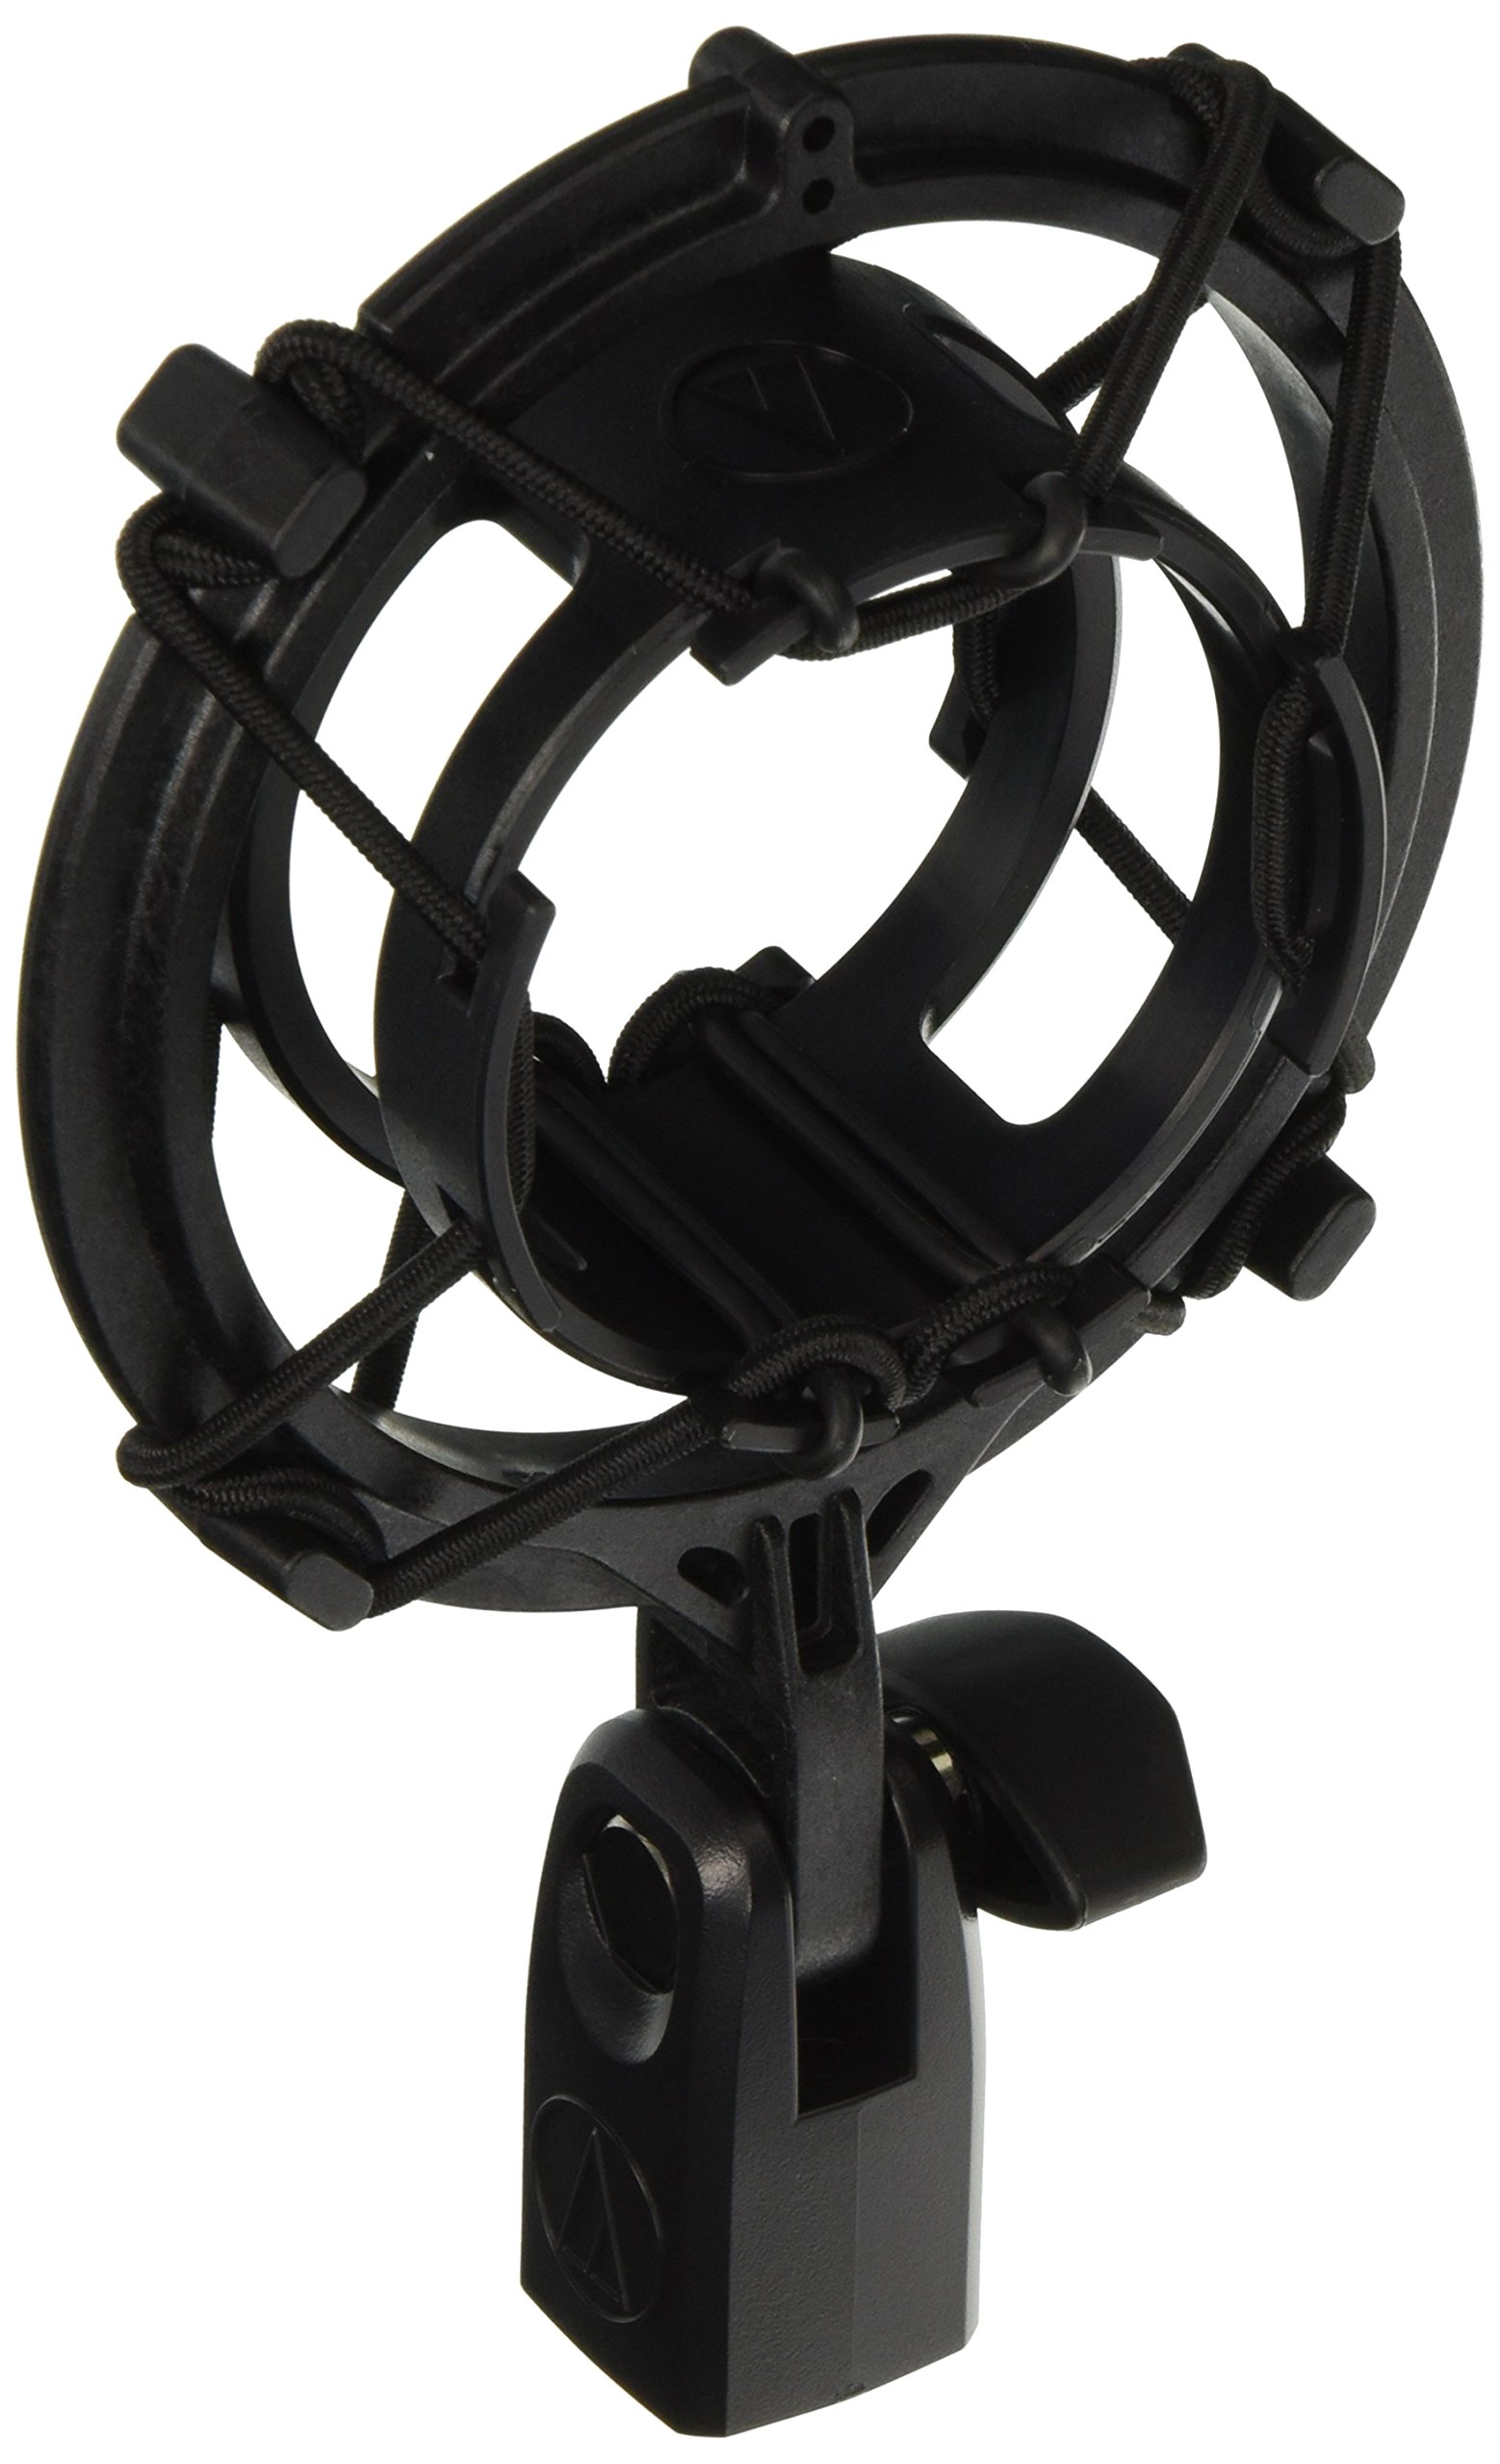 Audio-Technica AT8458 Microphone Shock Mount by Audio-Technica